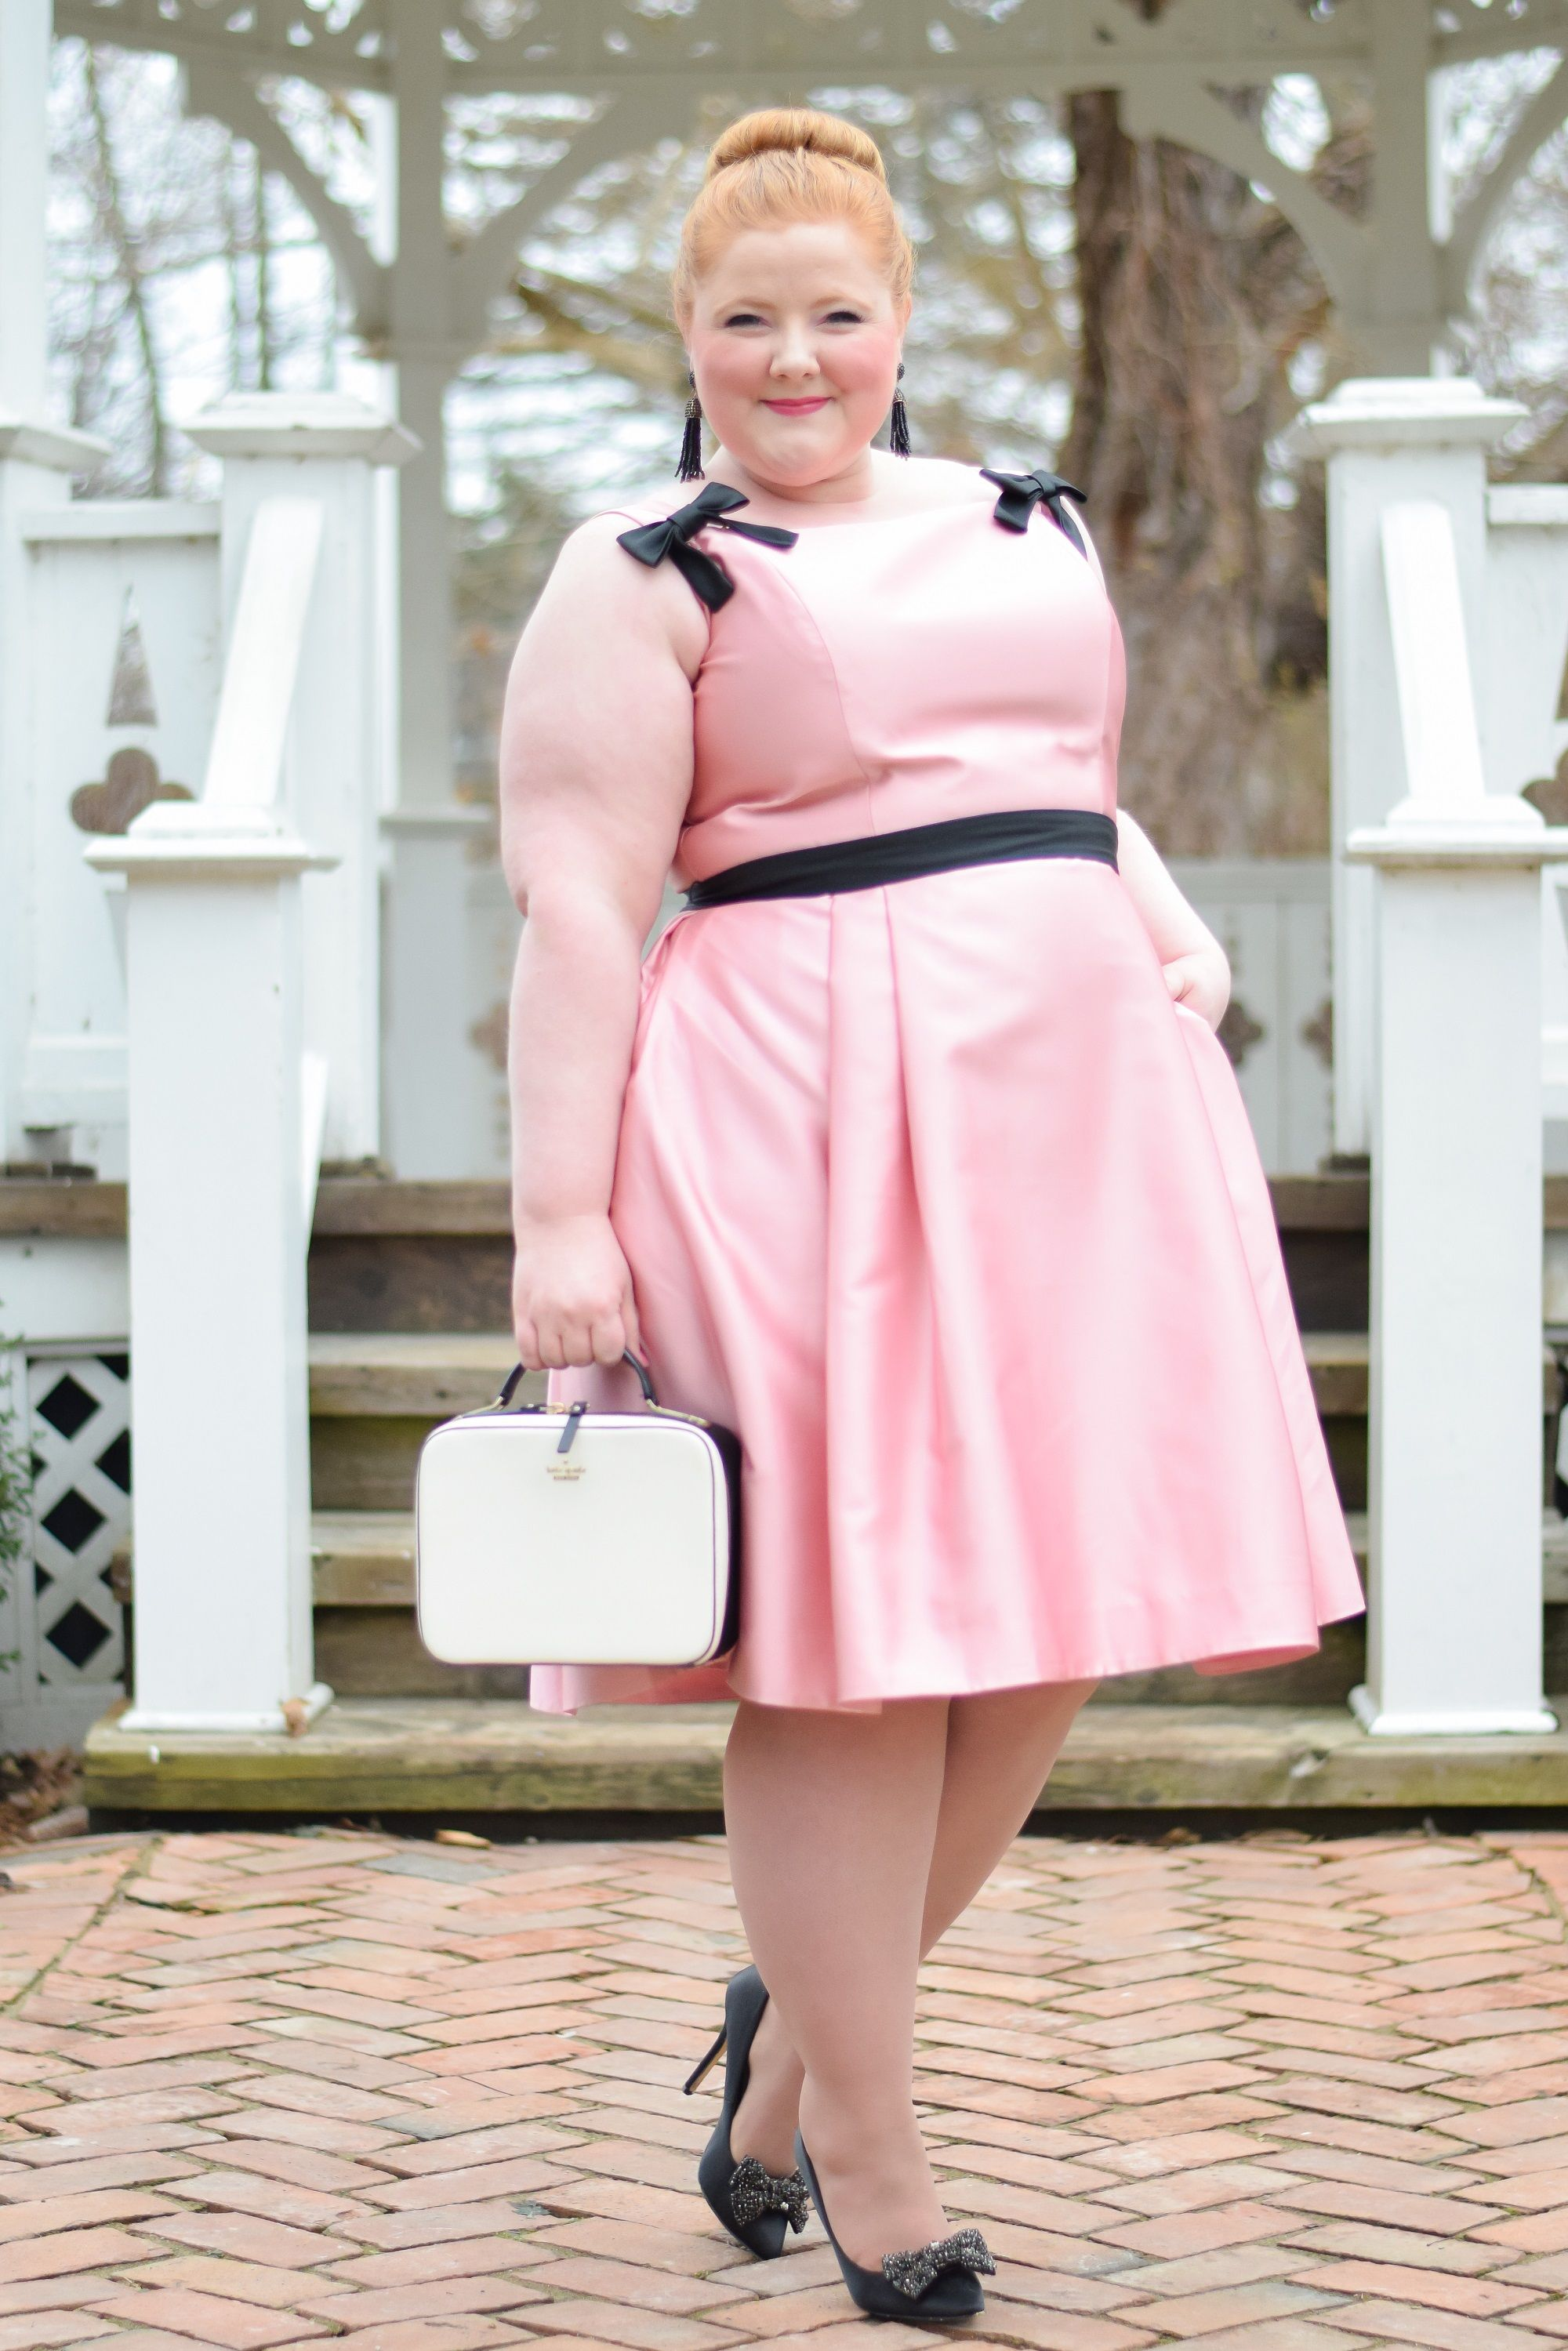 e0e381feca9 The Gal Meets Glam Holiday Collection 2018  GMG Felicity Dress review  styled for holiday Christmas parties in a size 20 on a plus size influencer.